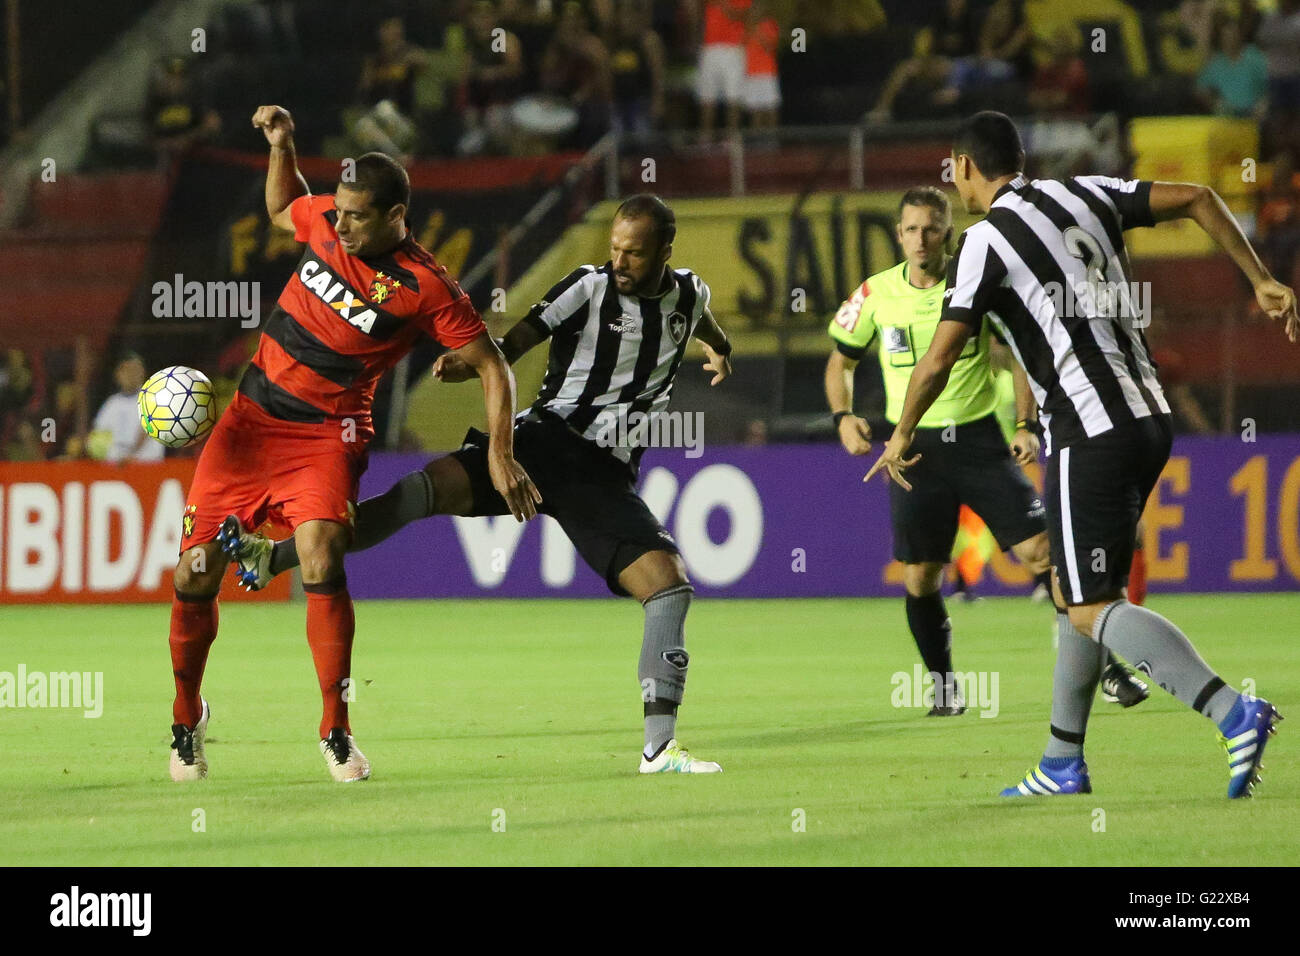 Recife Pe 05 22 2016 Sport X Botafogo Diego Souza Sport Ball In Stock Photo Alamy